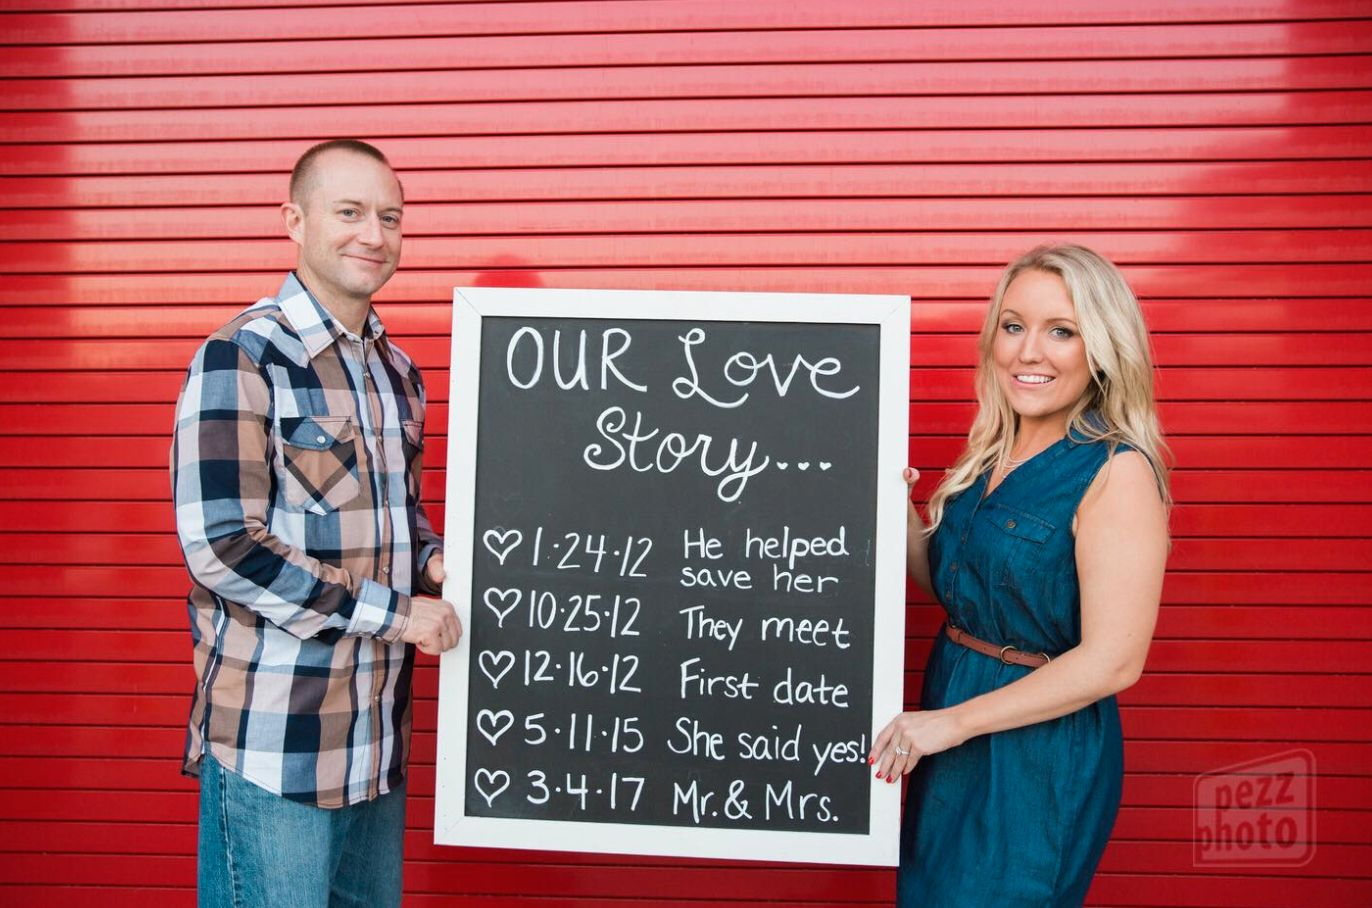 The pair are set to marry following a grand proposal from Hill in